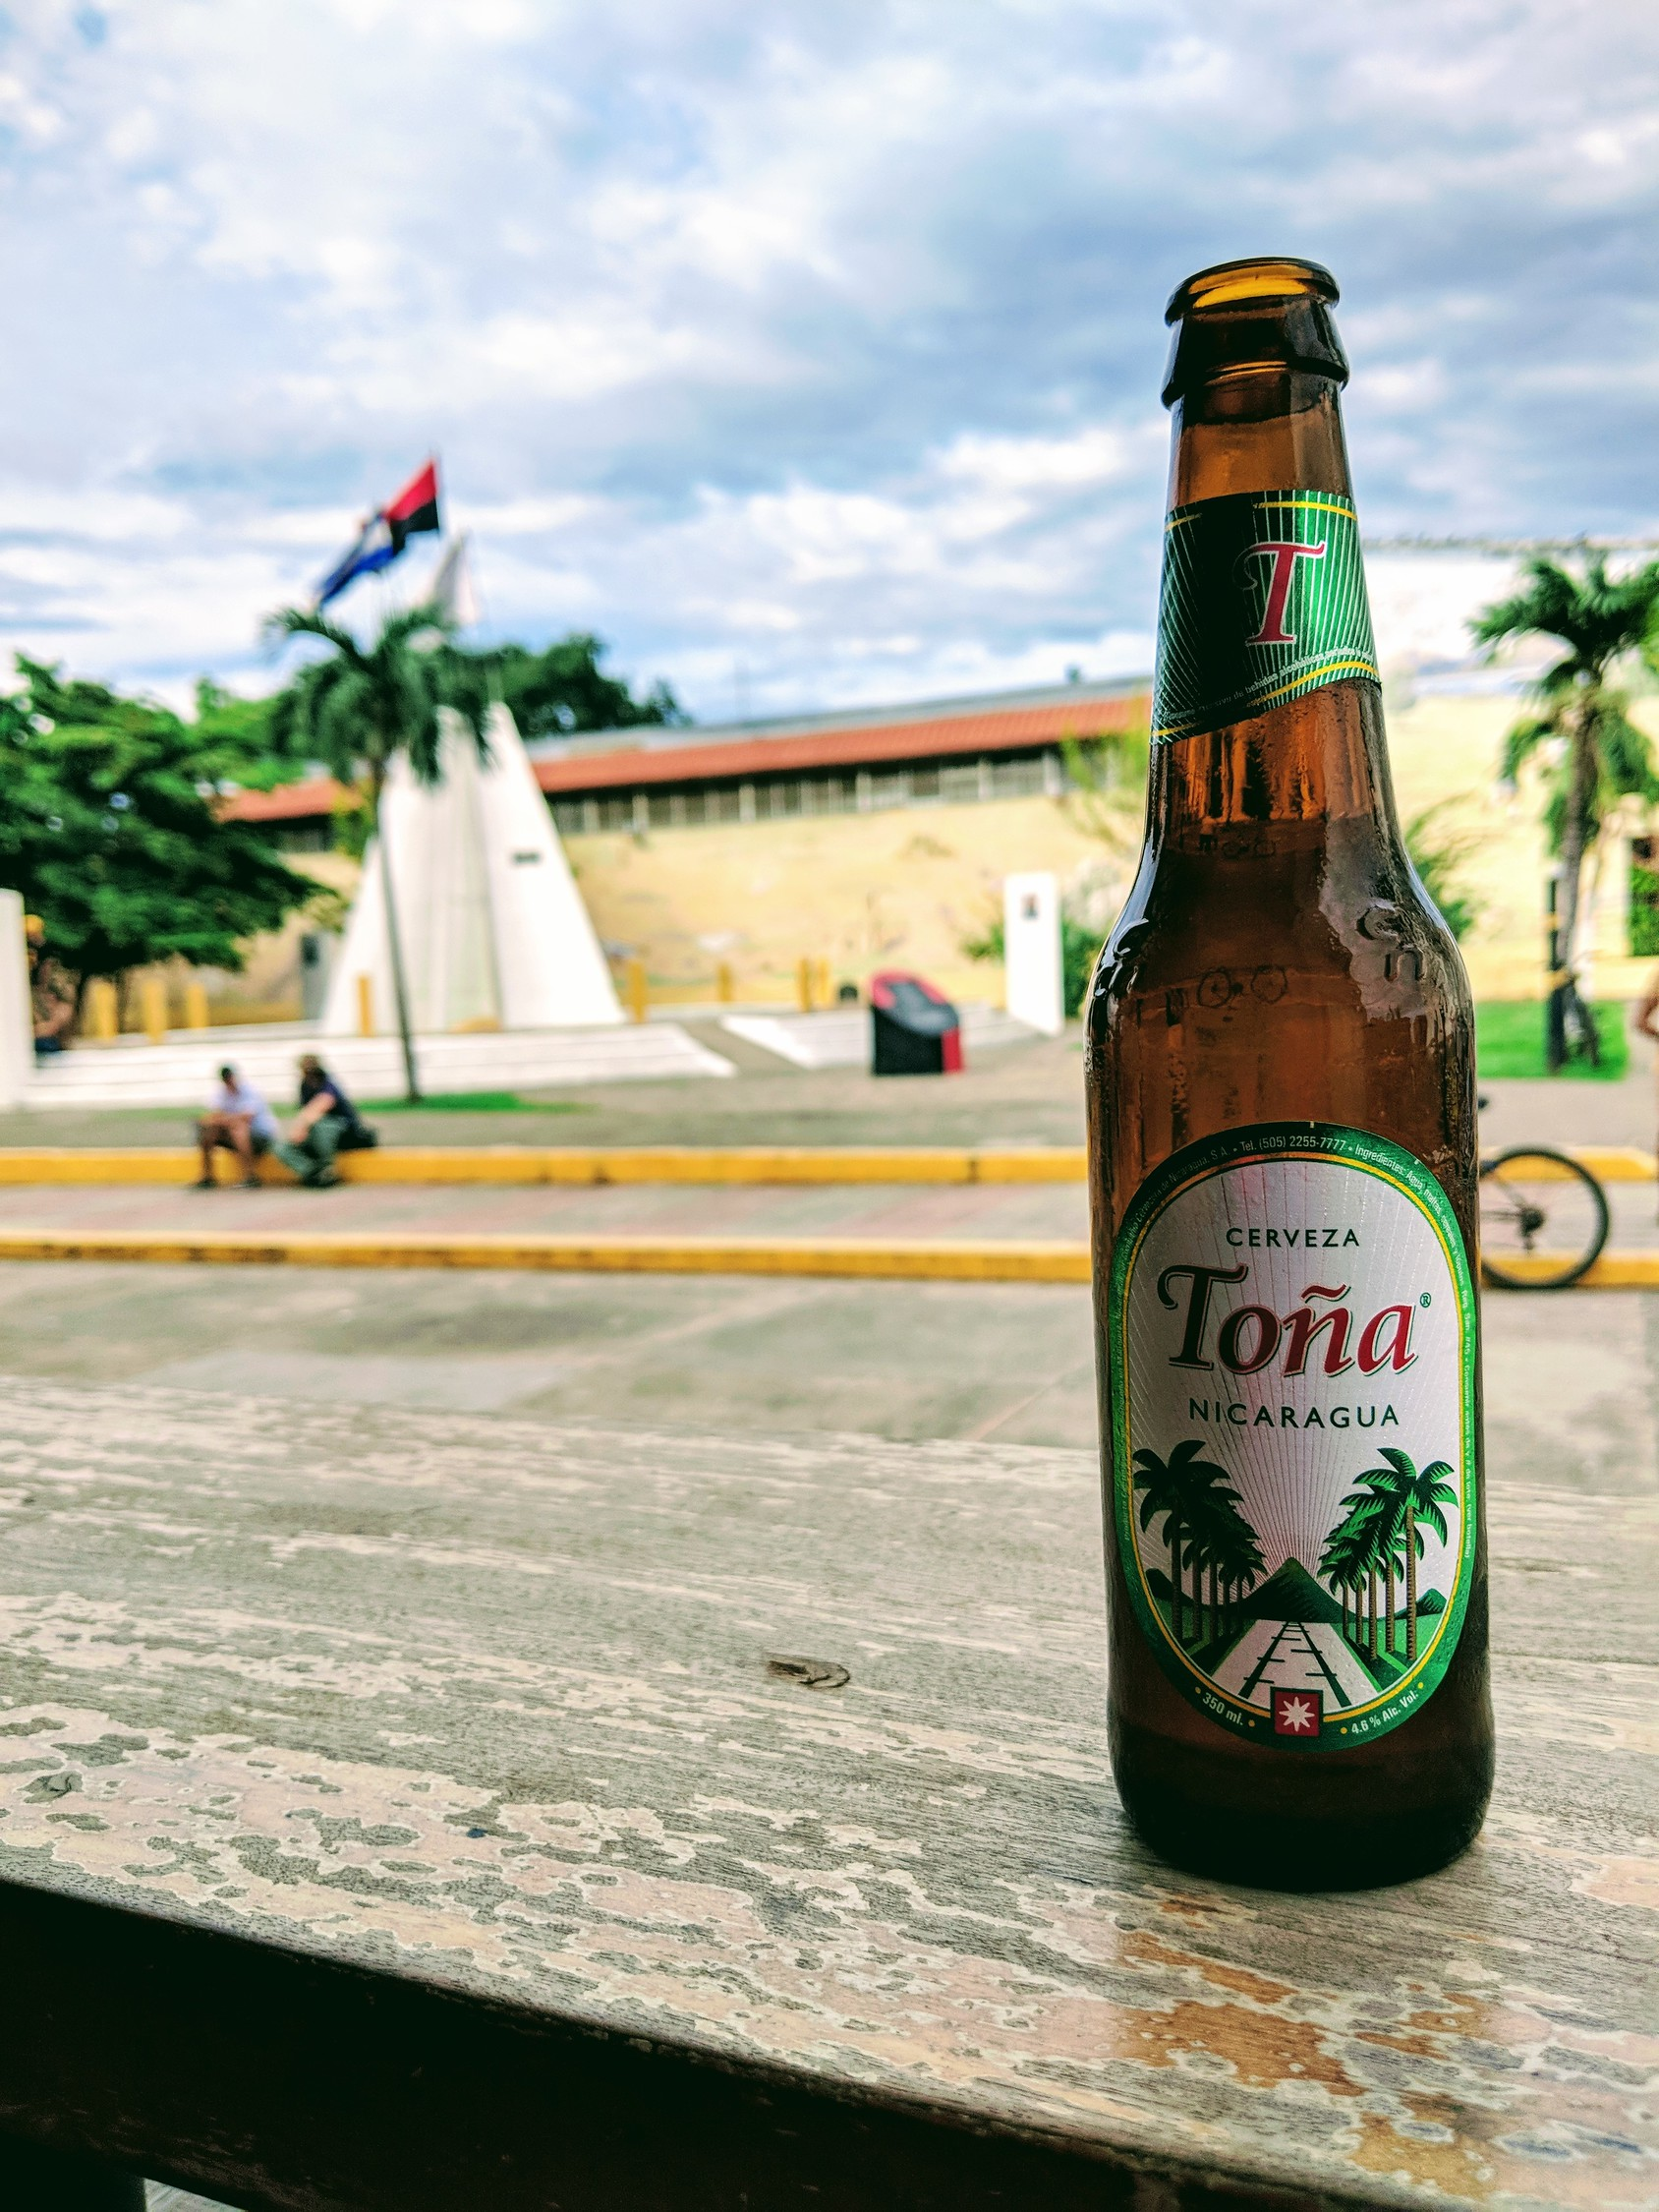 Tona beer, national beer of Nicaragua on a railing in Leon looking out onto the main square.